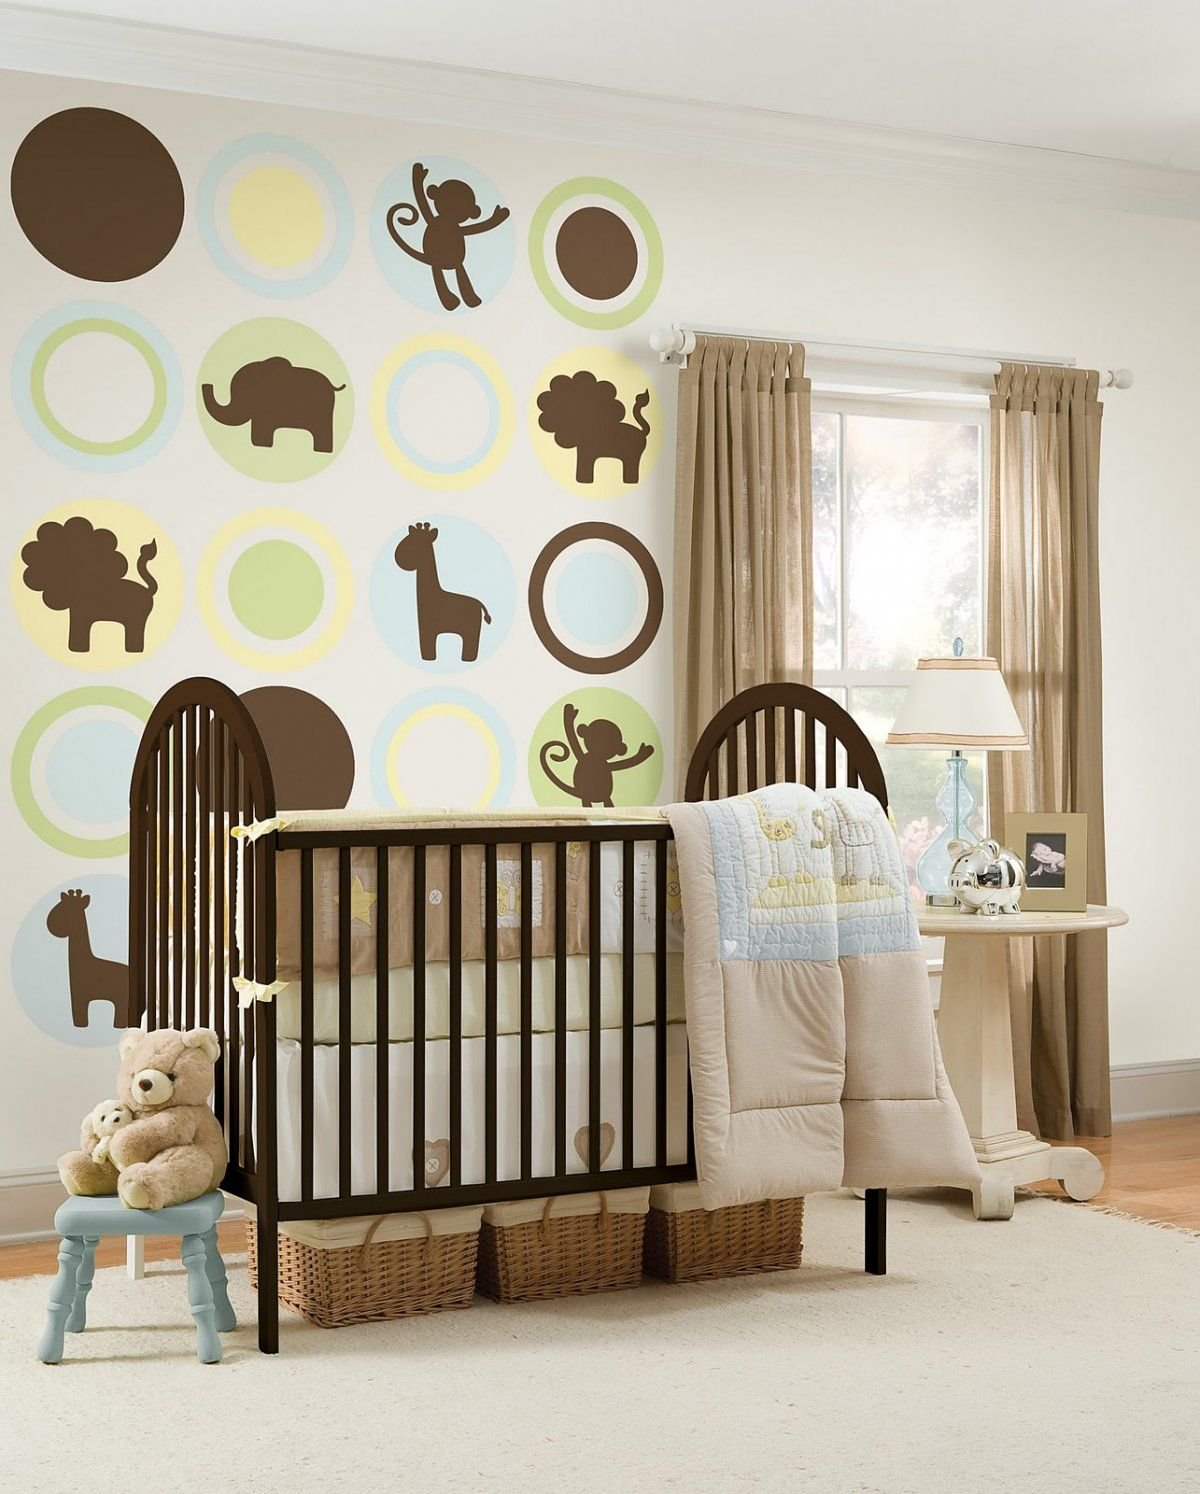 Wall Pops: Wall Stickers & Decals | Decoracion habitacion bebe ...